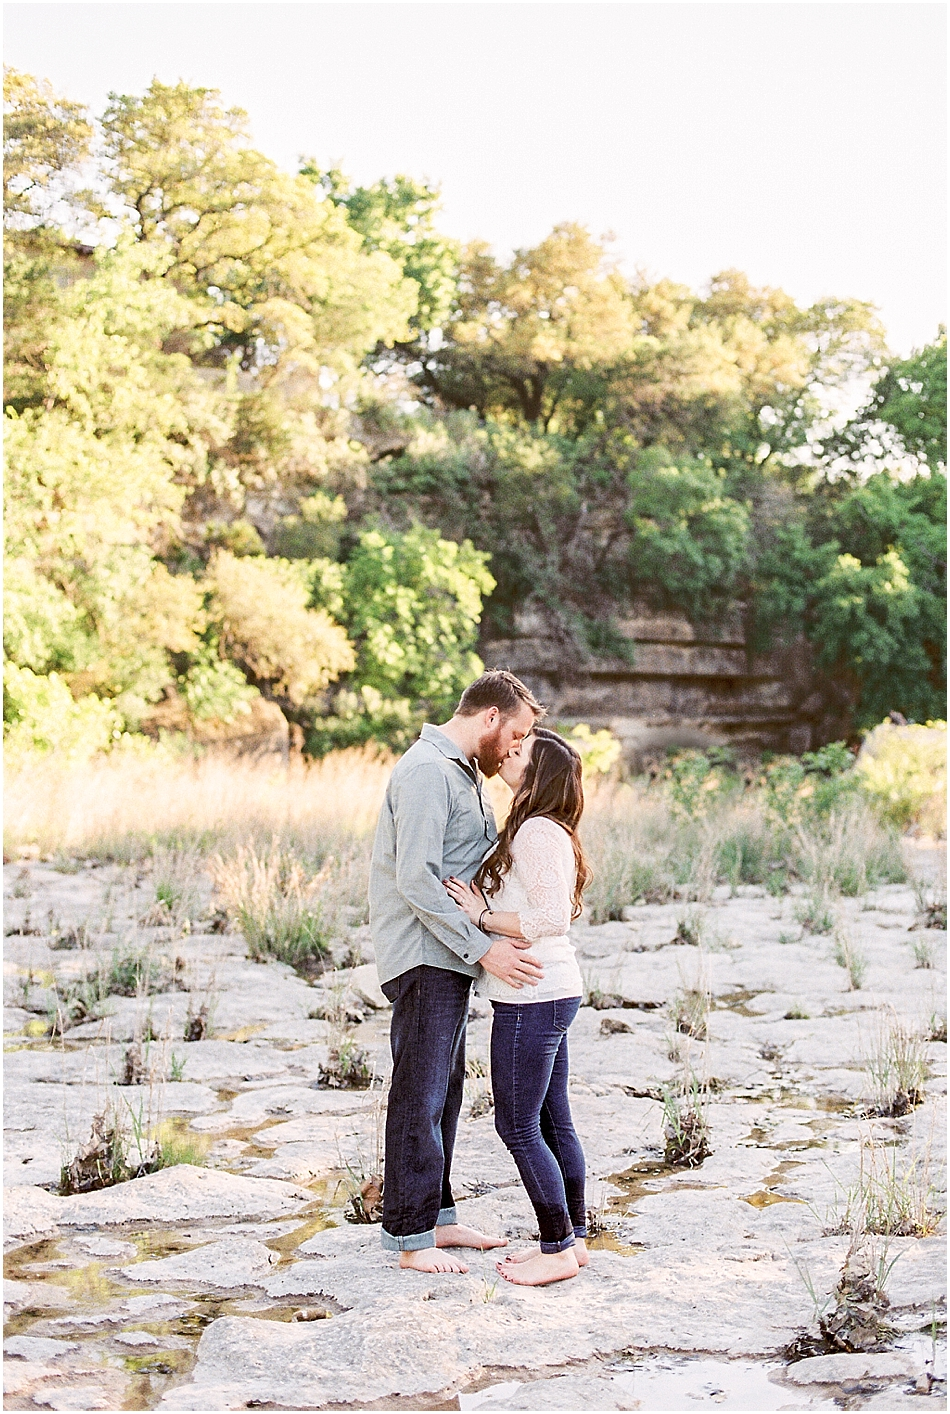 Brooke + Nick | Fine Art Creek Side Engagement | Film | Emilie Anne Photography.jpg